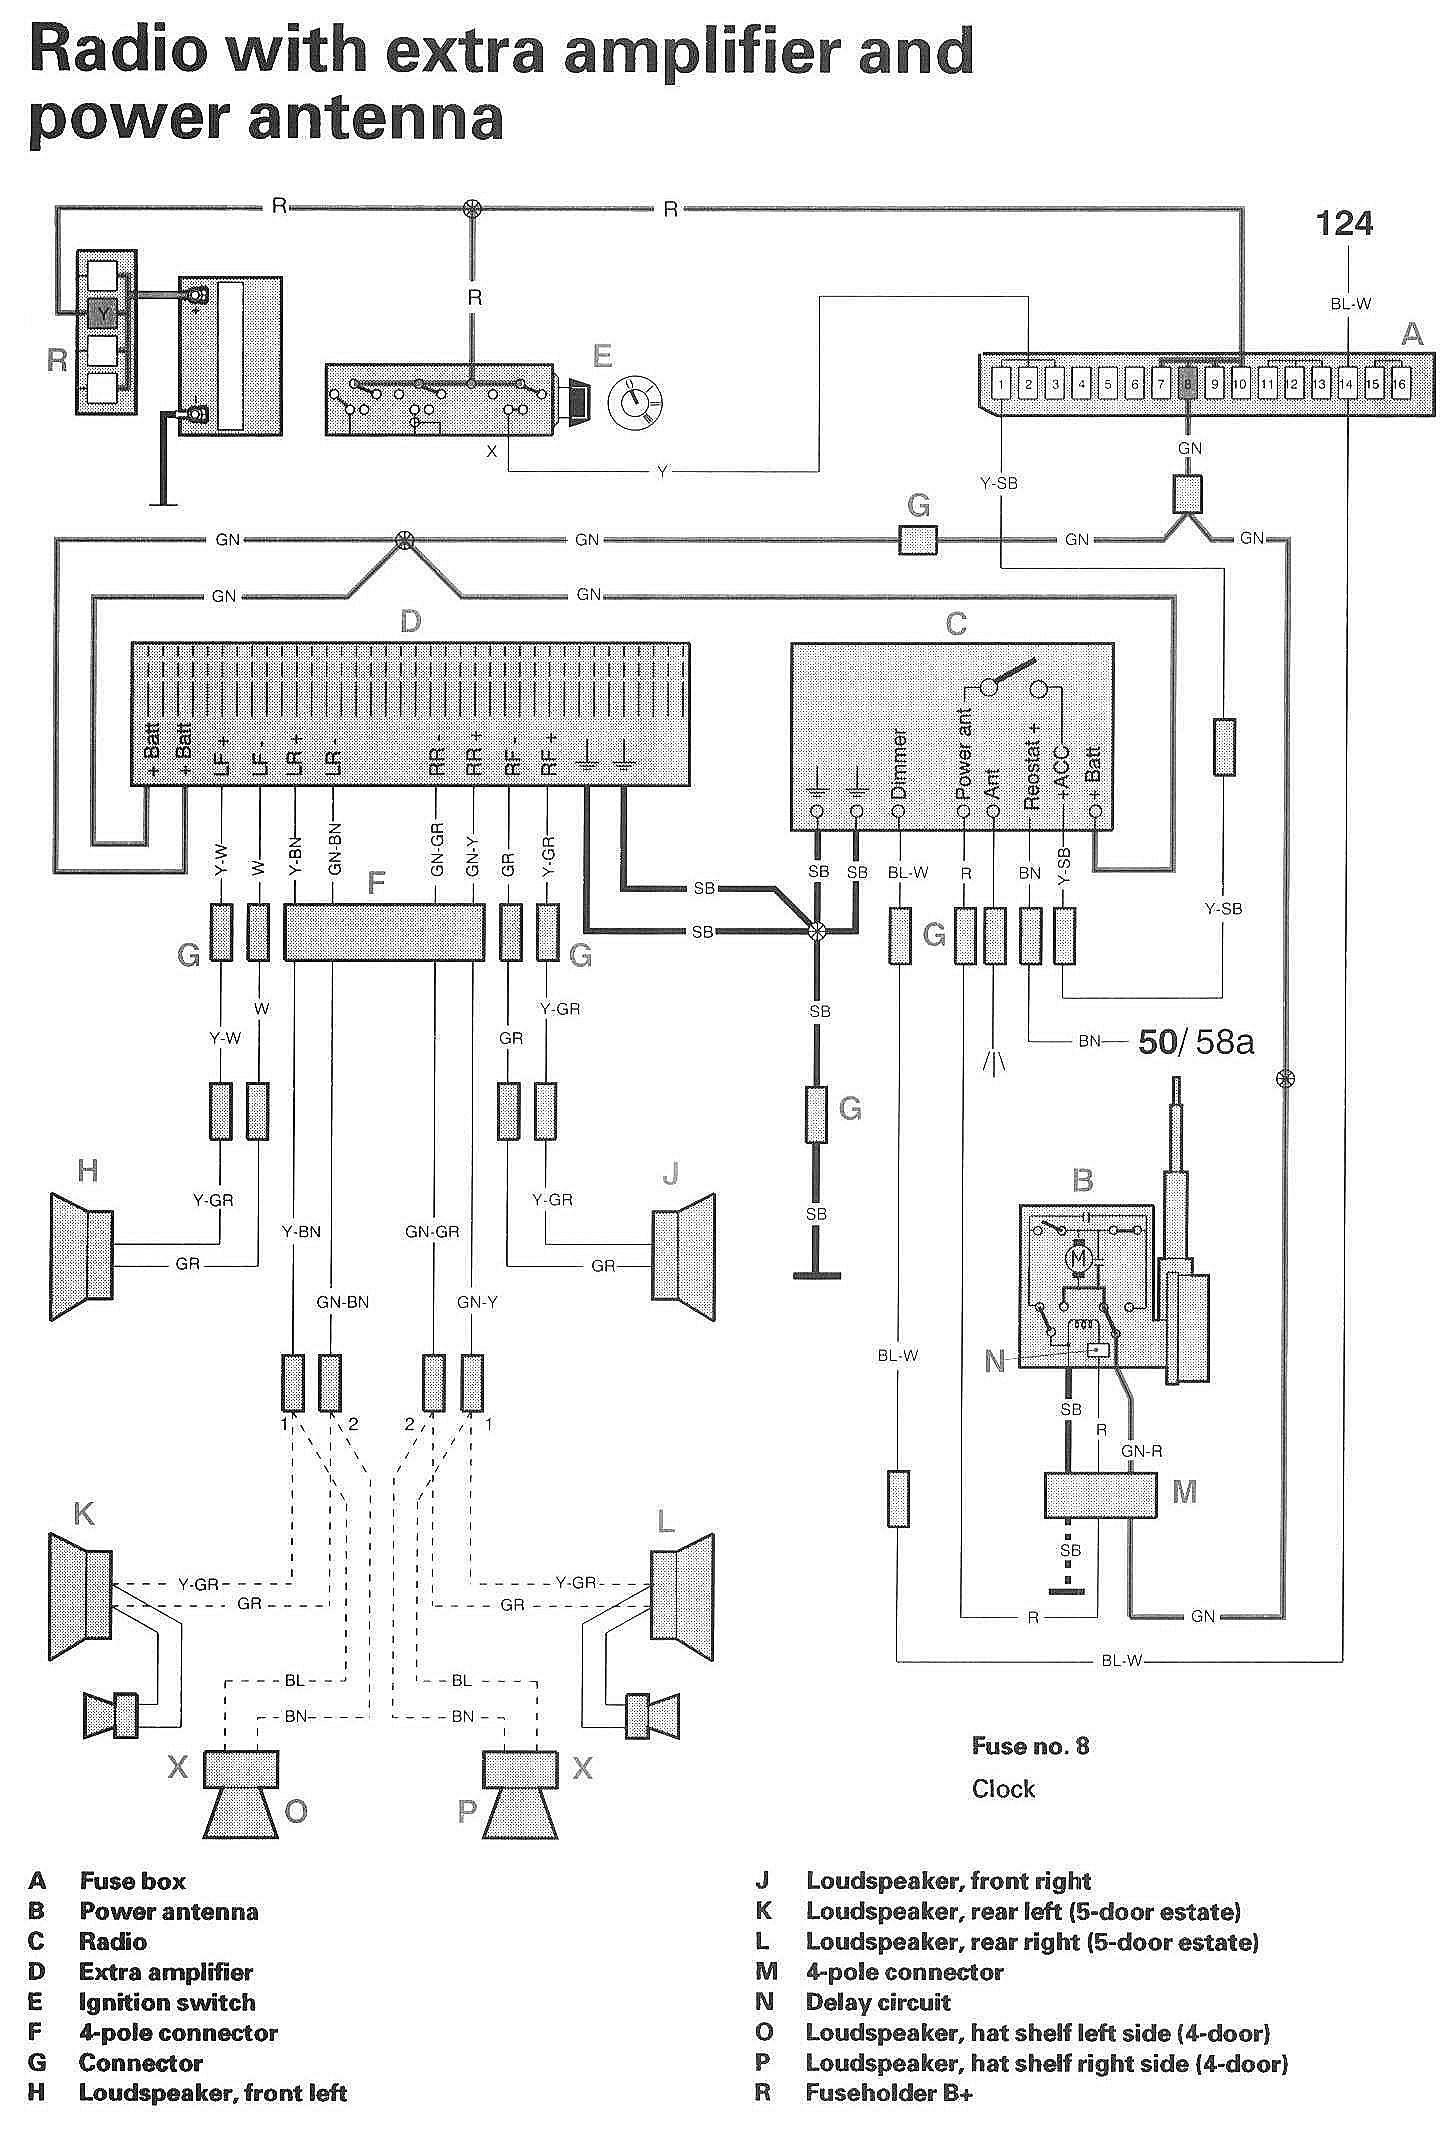 HW_4040] Player Wiring Harness Wire Aftermarket Radio Install Fits Volvo V70  Download Diagram | Volvo S70 Stereo Wiring Diagram |  | Pap Xtern Meric Piot Gray Stre Joami Xaem Scata Norab Wiluq Sequ Xrenket  Licuk Mohammedshrine Librar Wiring 101